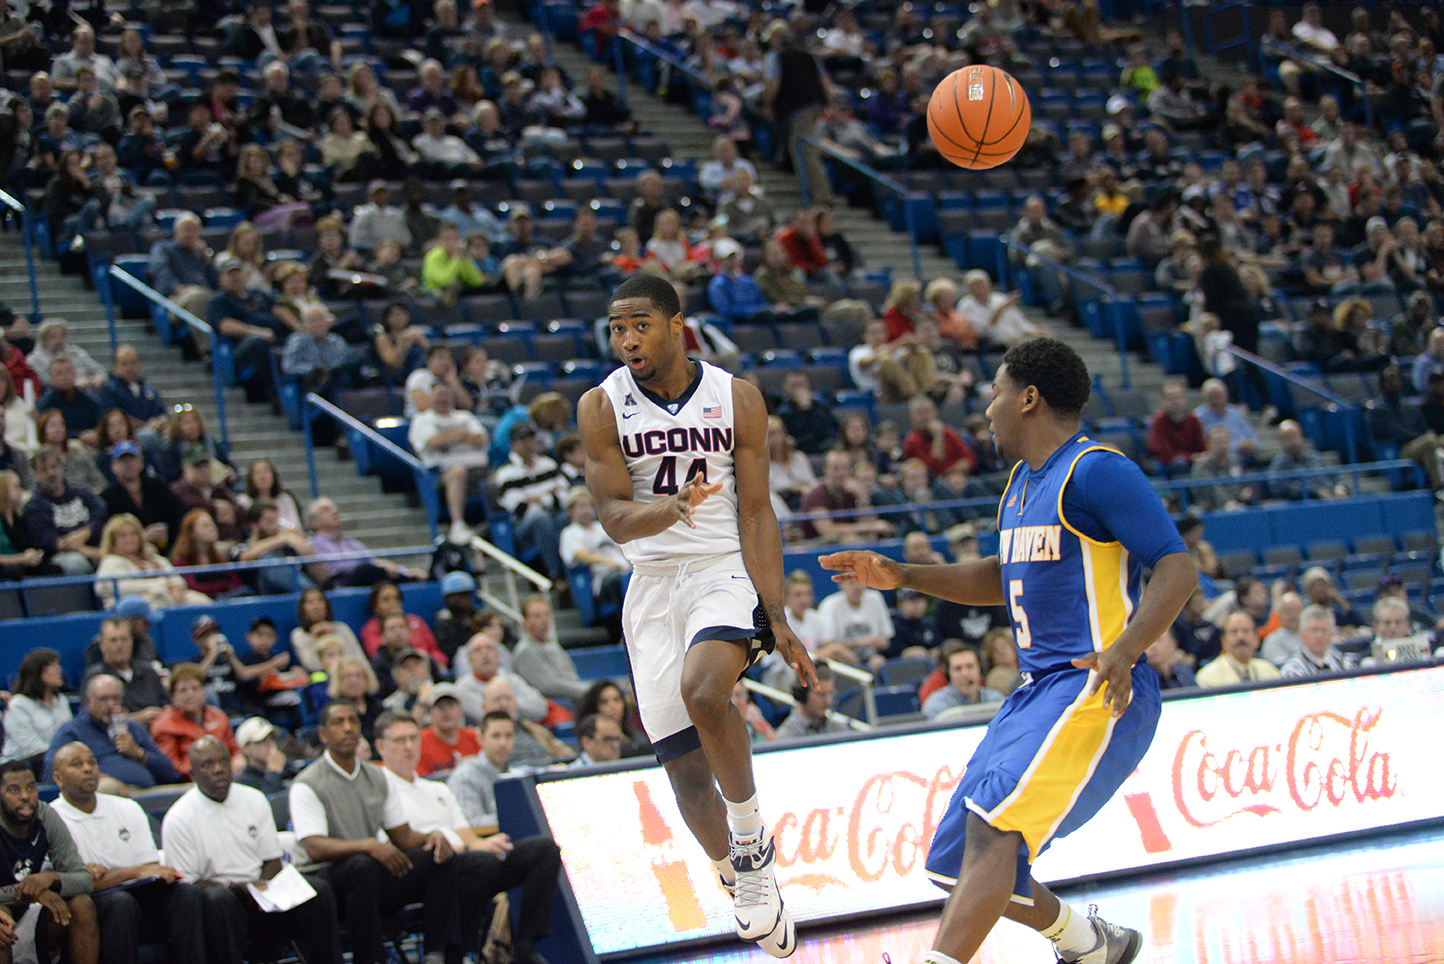 UConn guard Rodney Purvis attempts a pass during their 83-43 victory over New Haven at the XL Center on Nov. 7, 2015. Purvis finished with a team high of 11 points. (Ashley Maher/The Daily Campus).